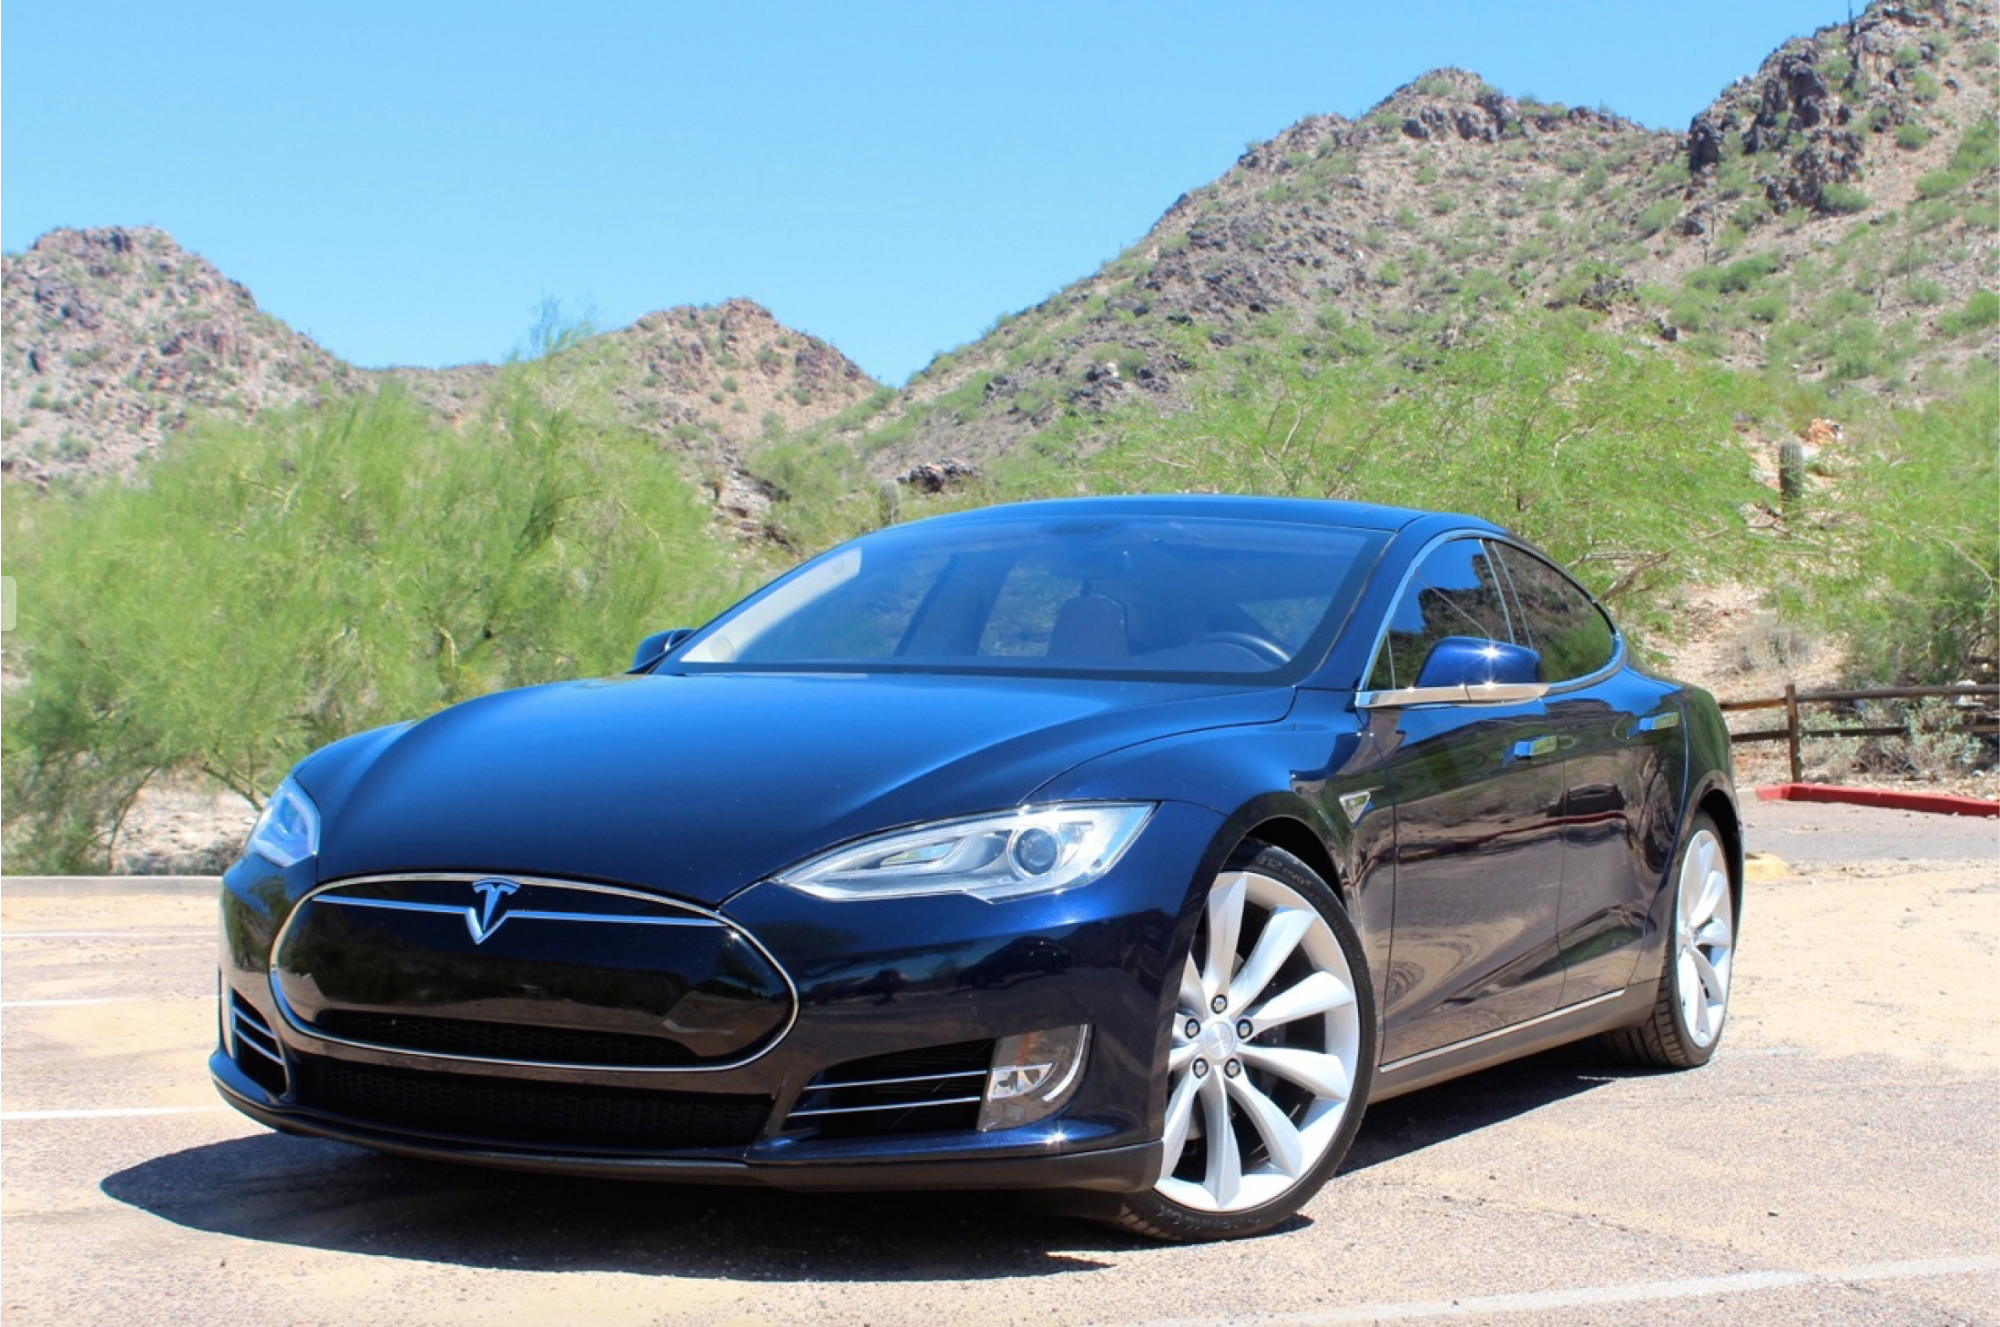 How I Used & Abused My Tesla — What a Tesla looks like after 100,000 ...